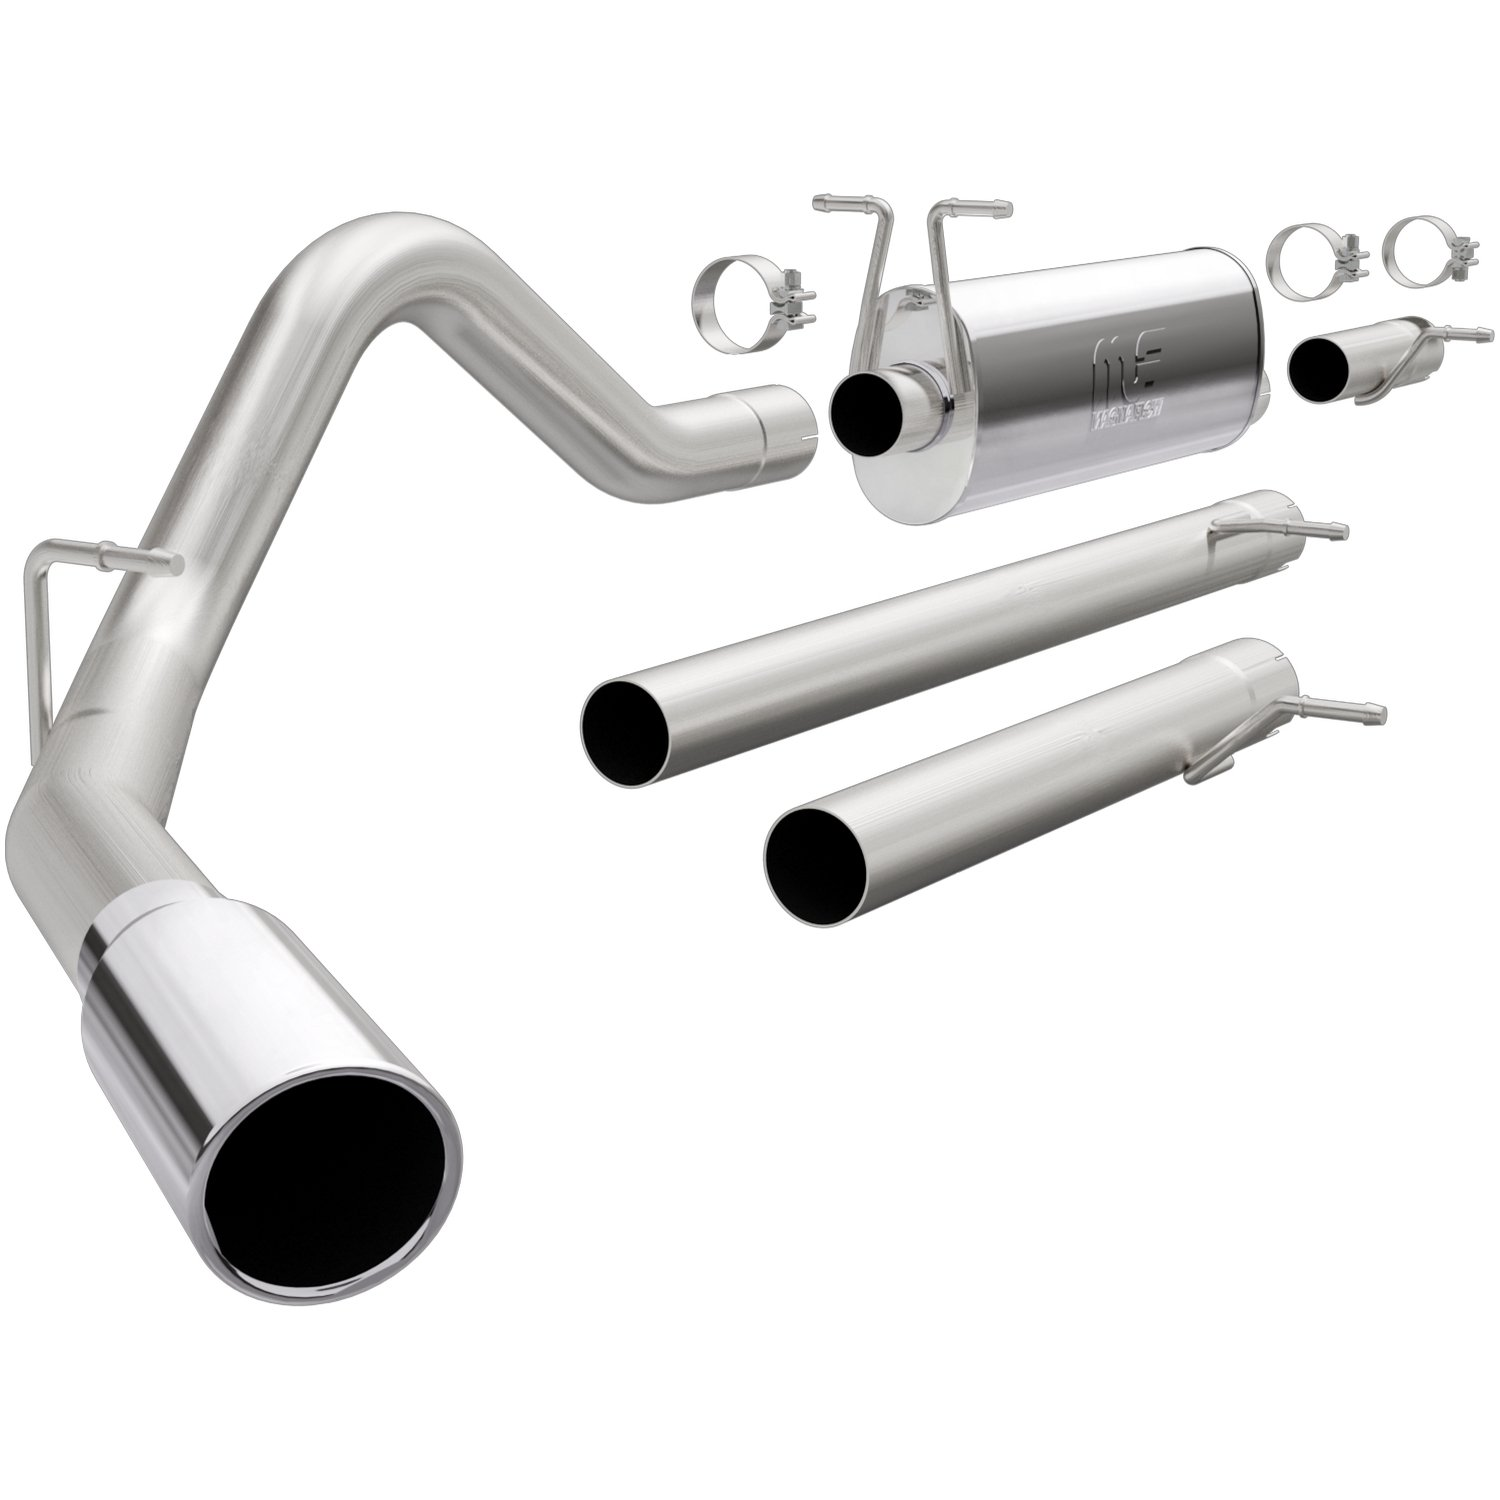 Magnaflow 15869: MF Series Cat-Back Exhaust System 1999